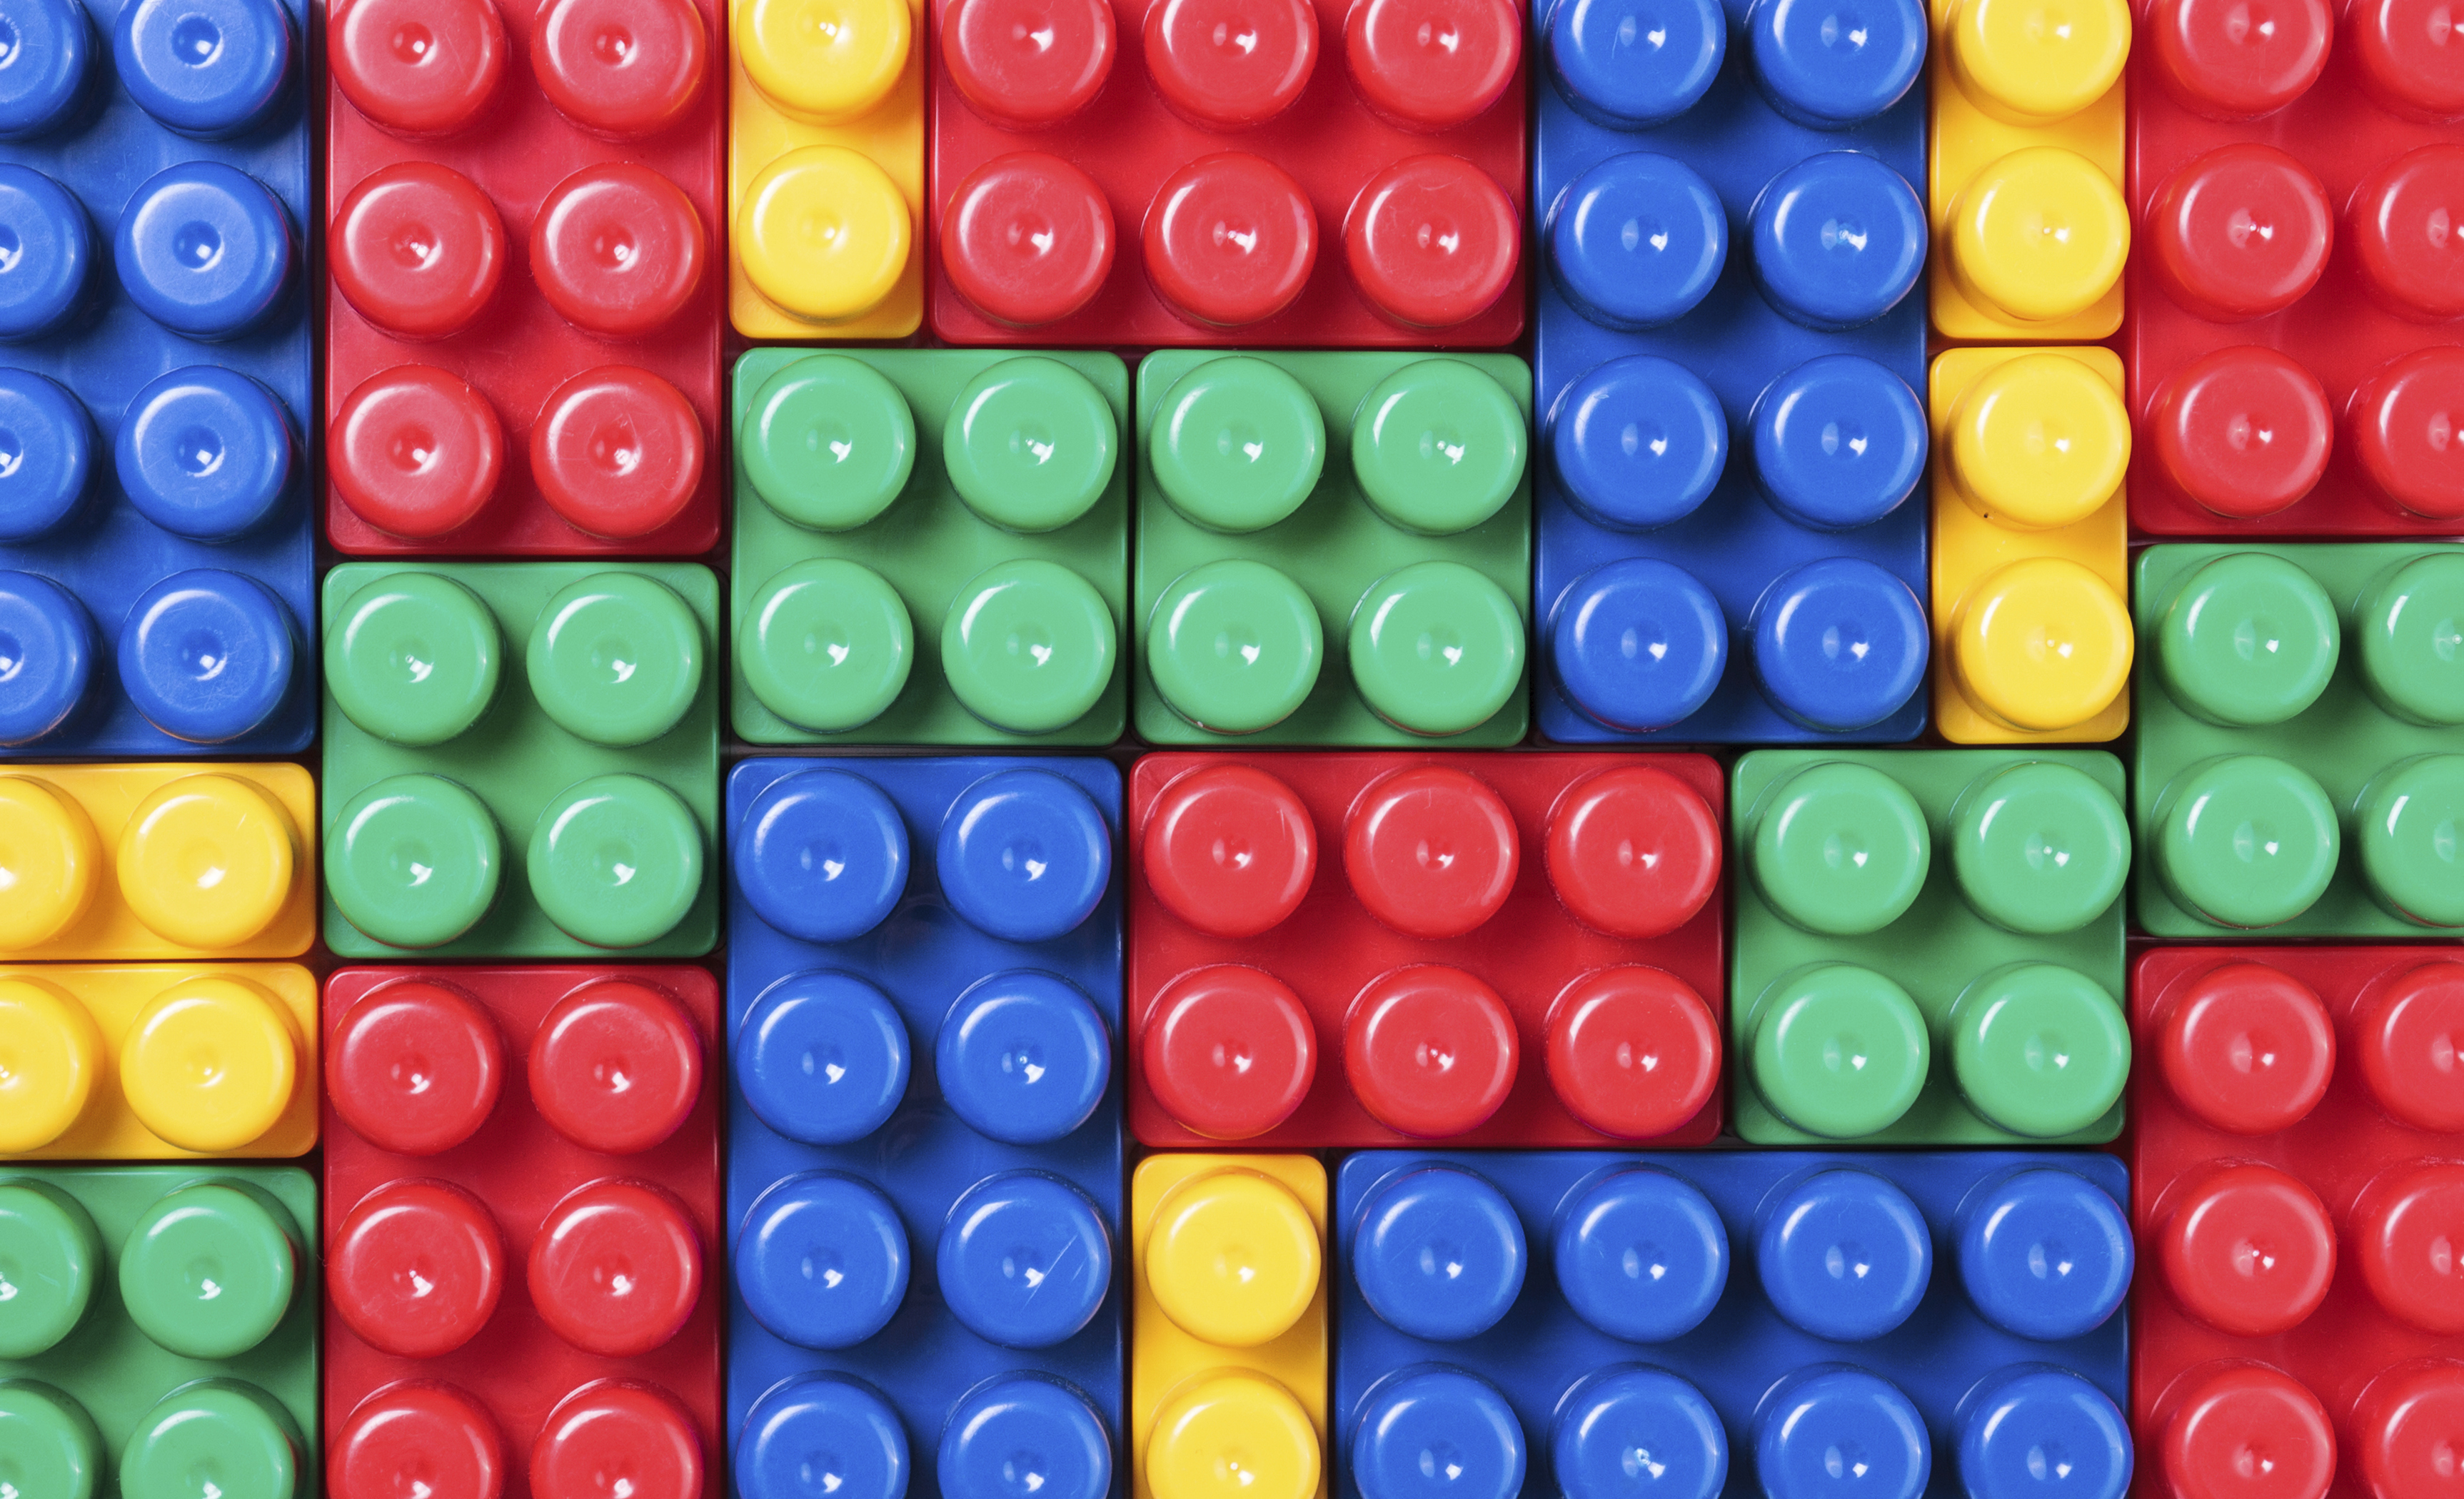 image showing a wall of interlocked toy building blocks